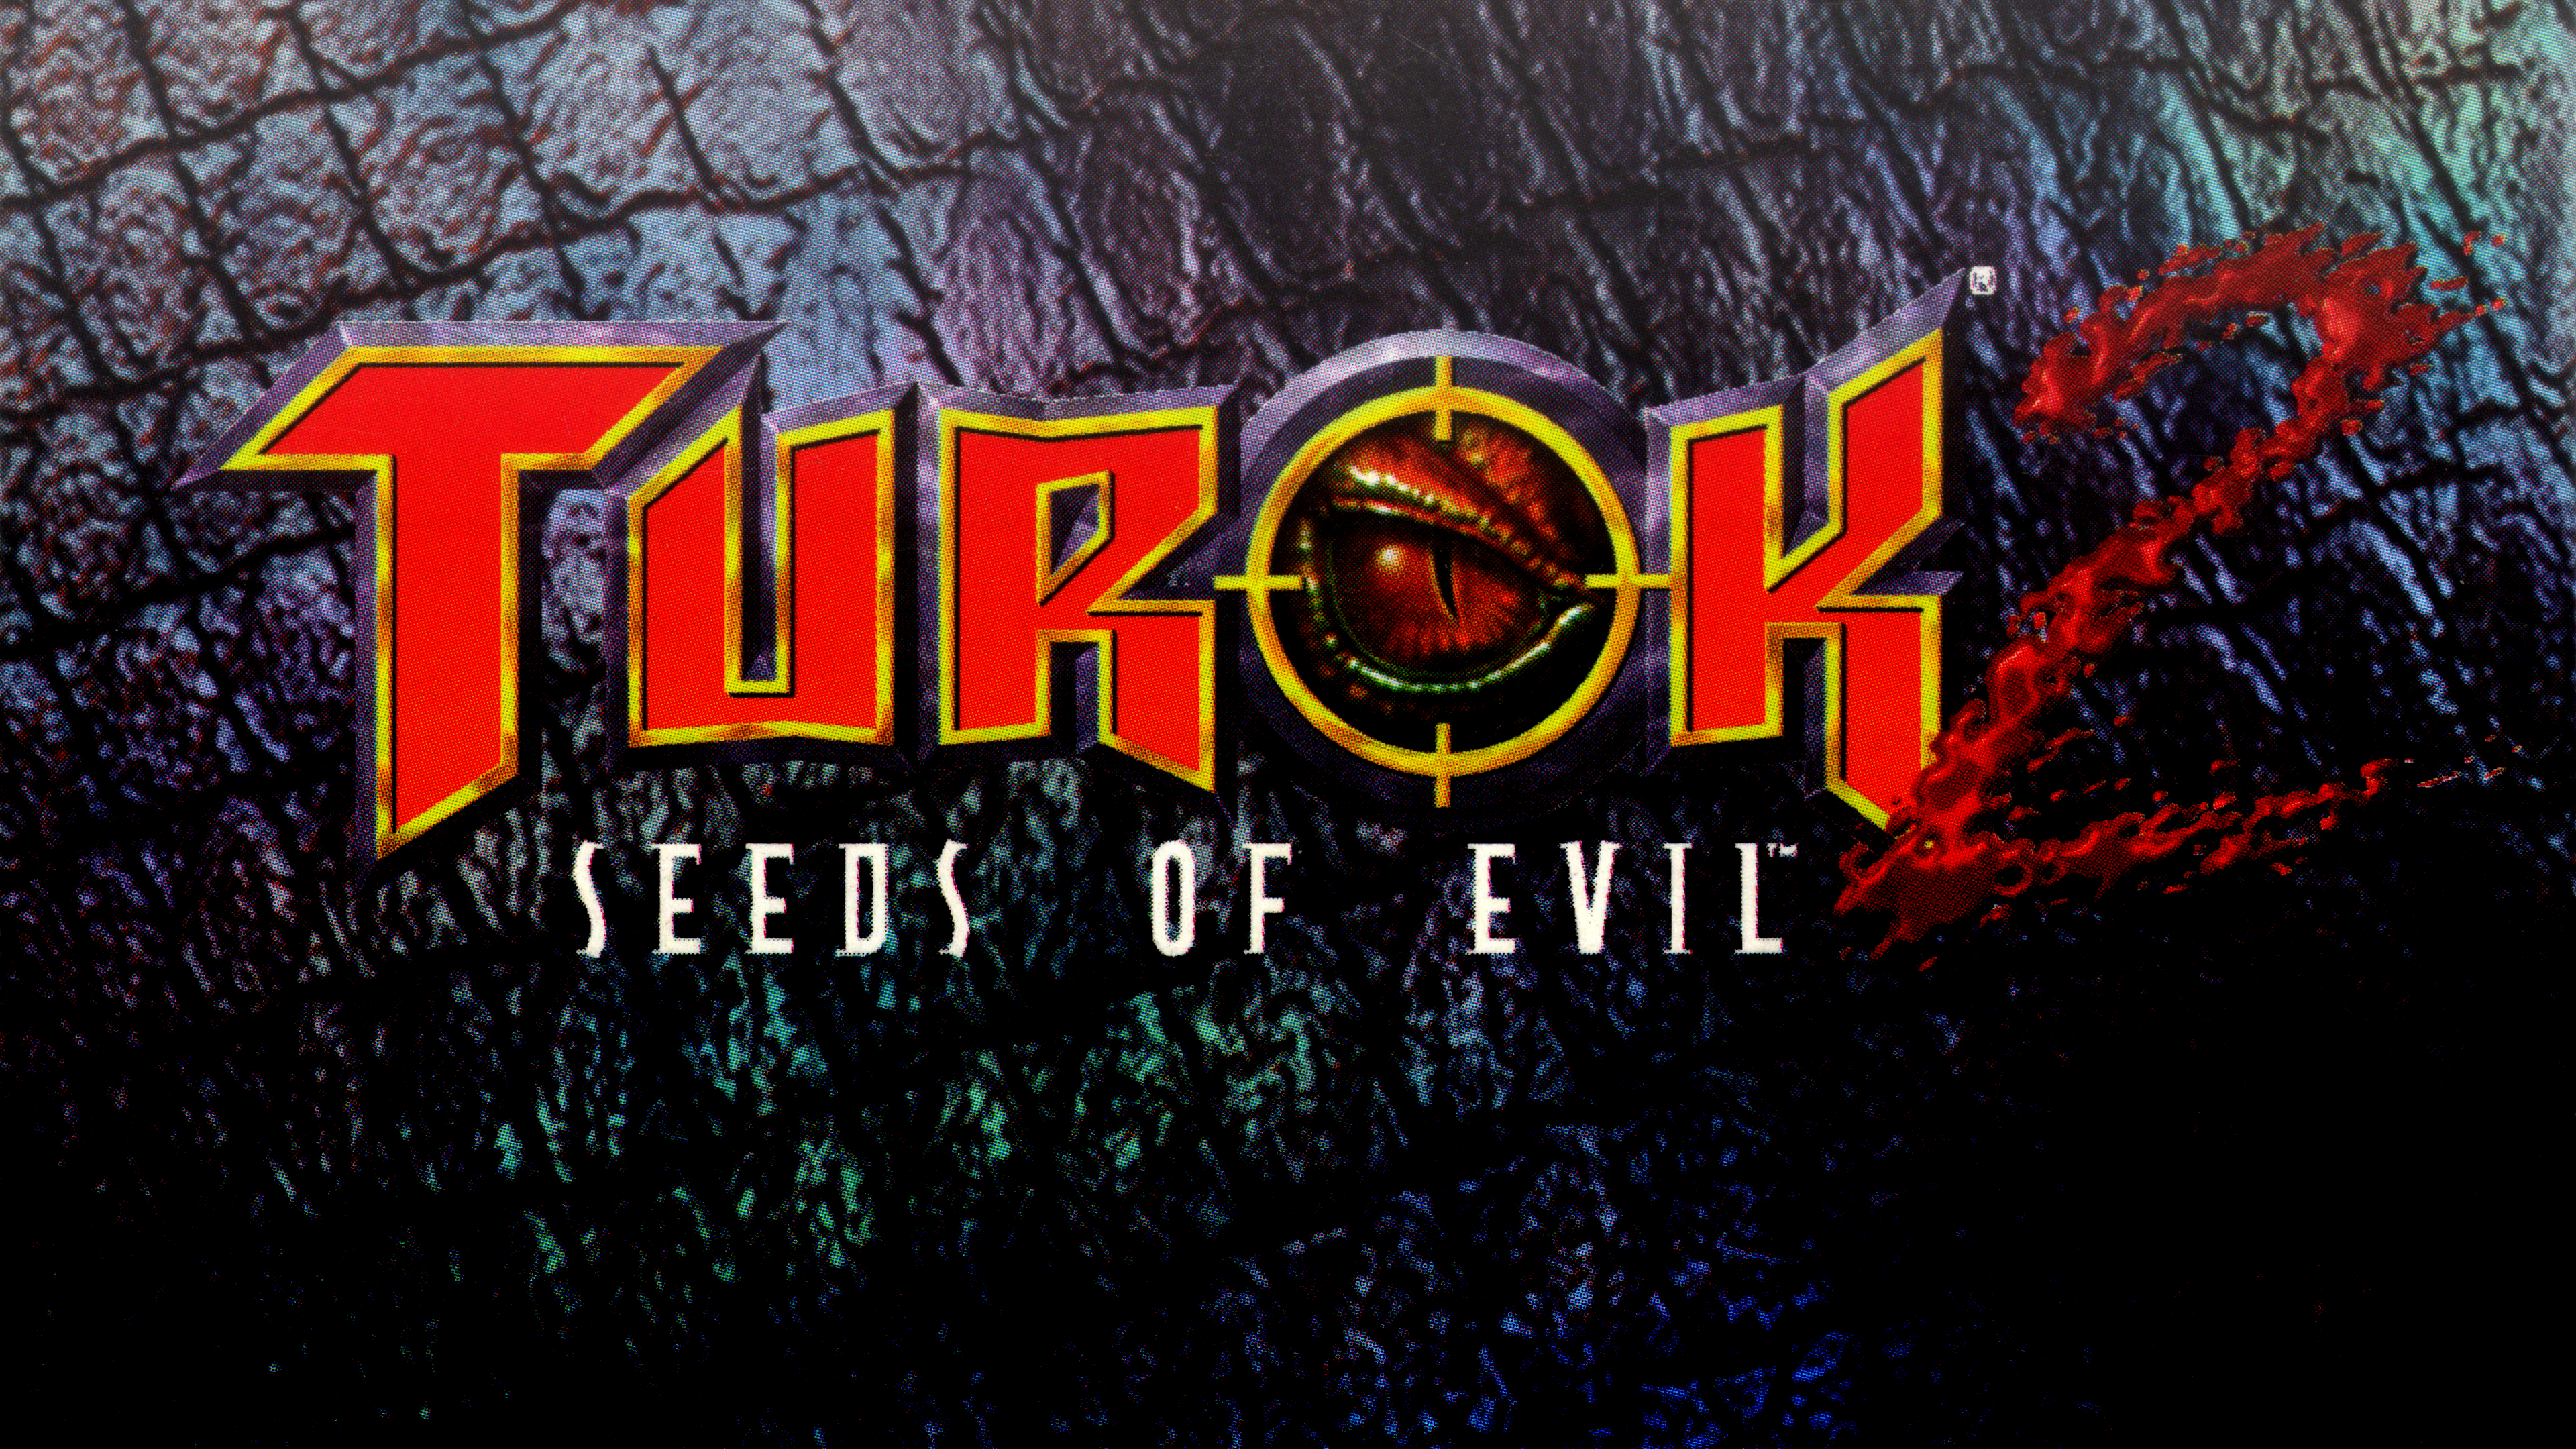 Turok 2 [2160p] Wallpaper by Razpootin on DeviantArt